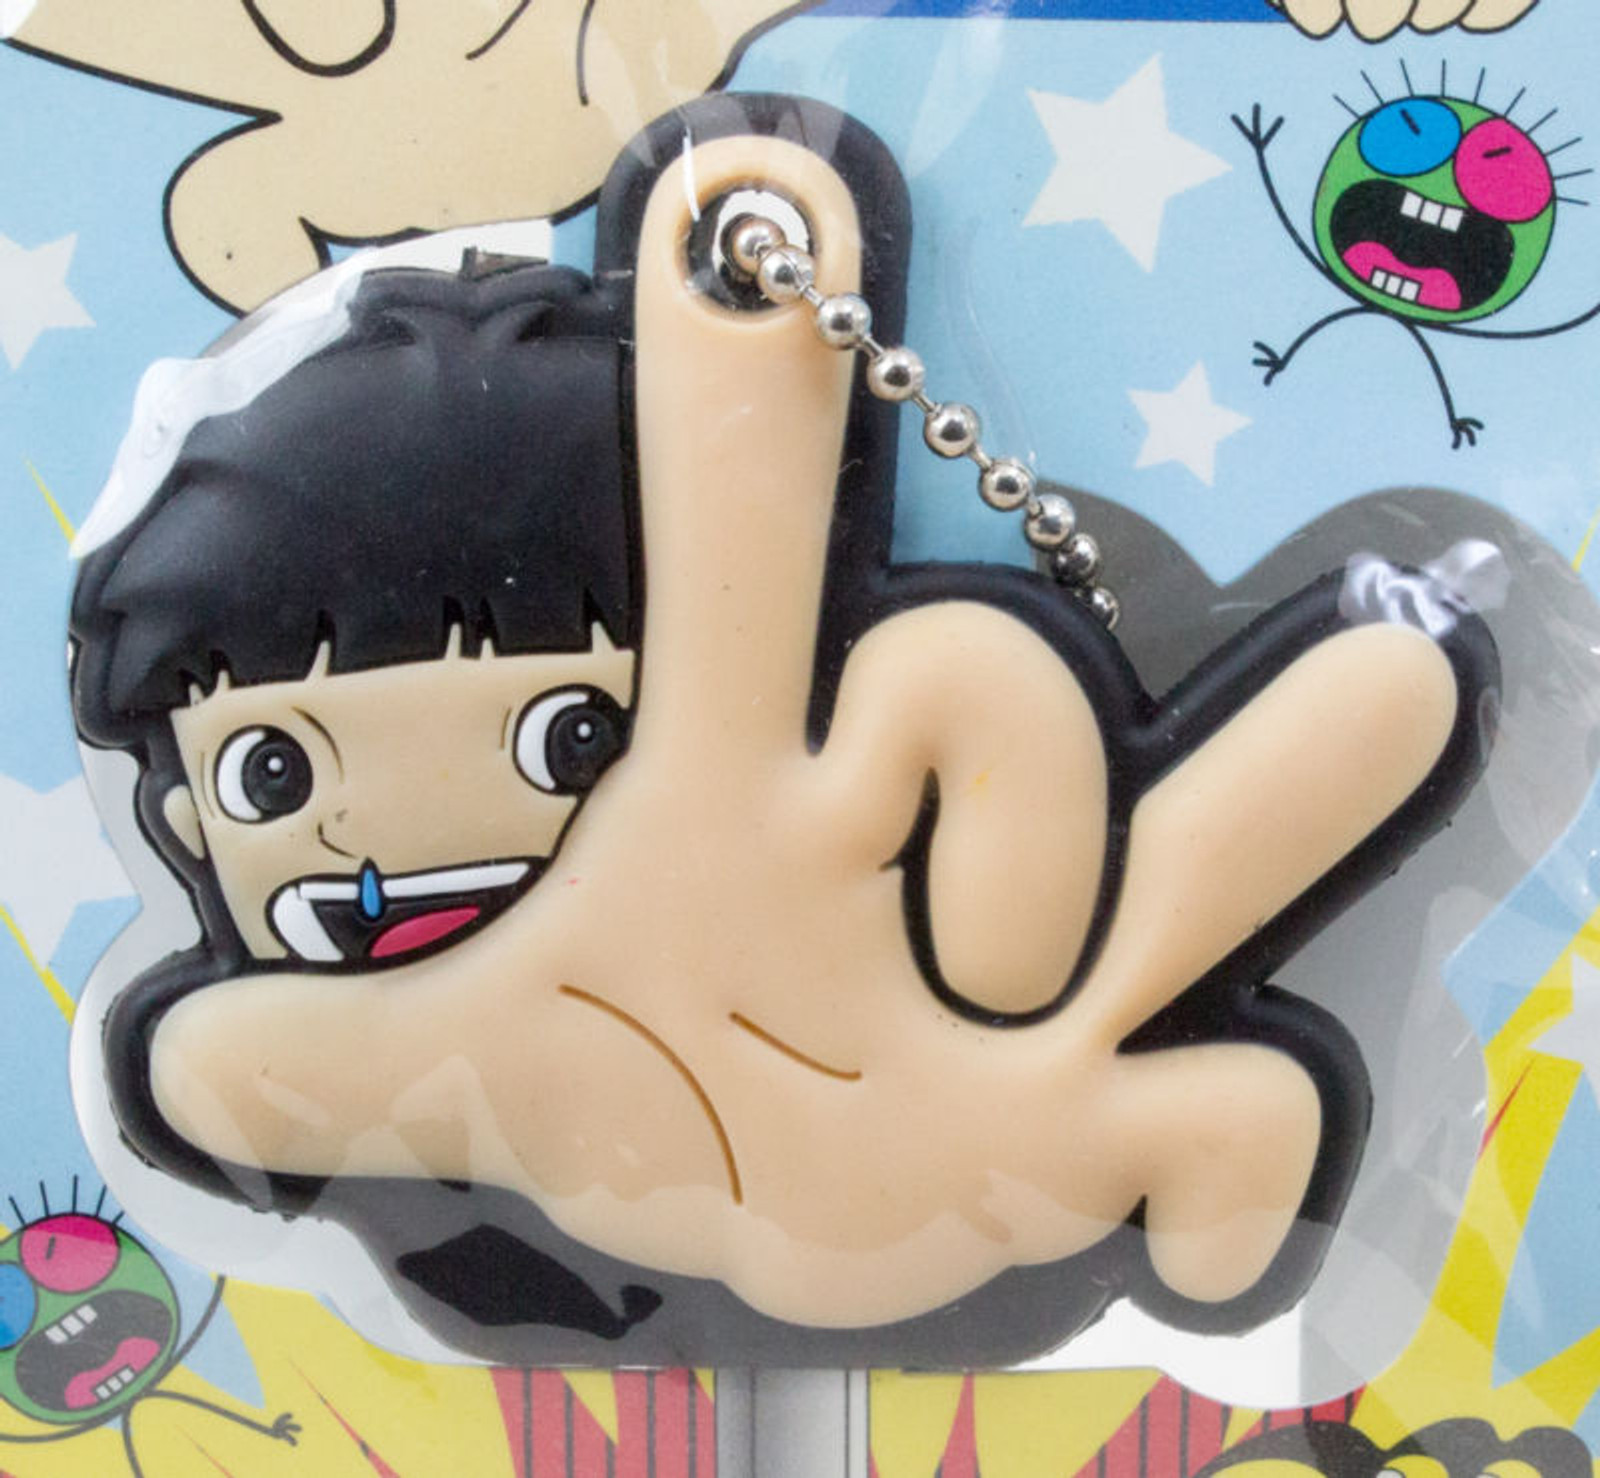 Makoto-Chan Guwashi Pose Key Cover Ball Chain Umezu Kazuo JAPAN ANIME MANGA